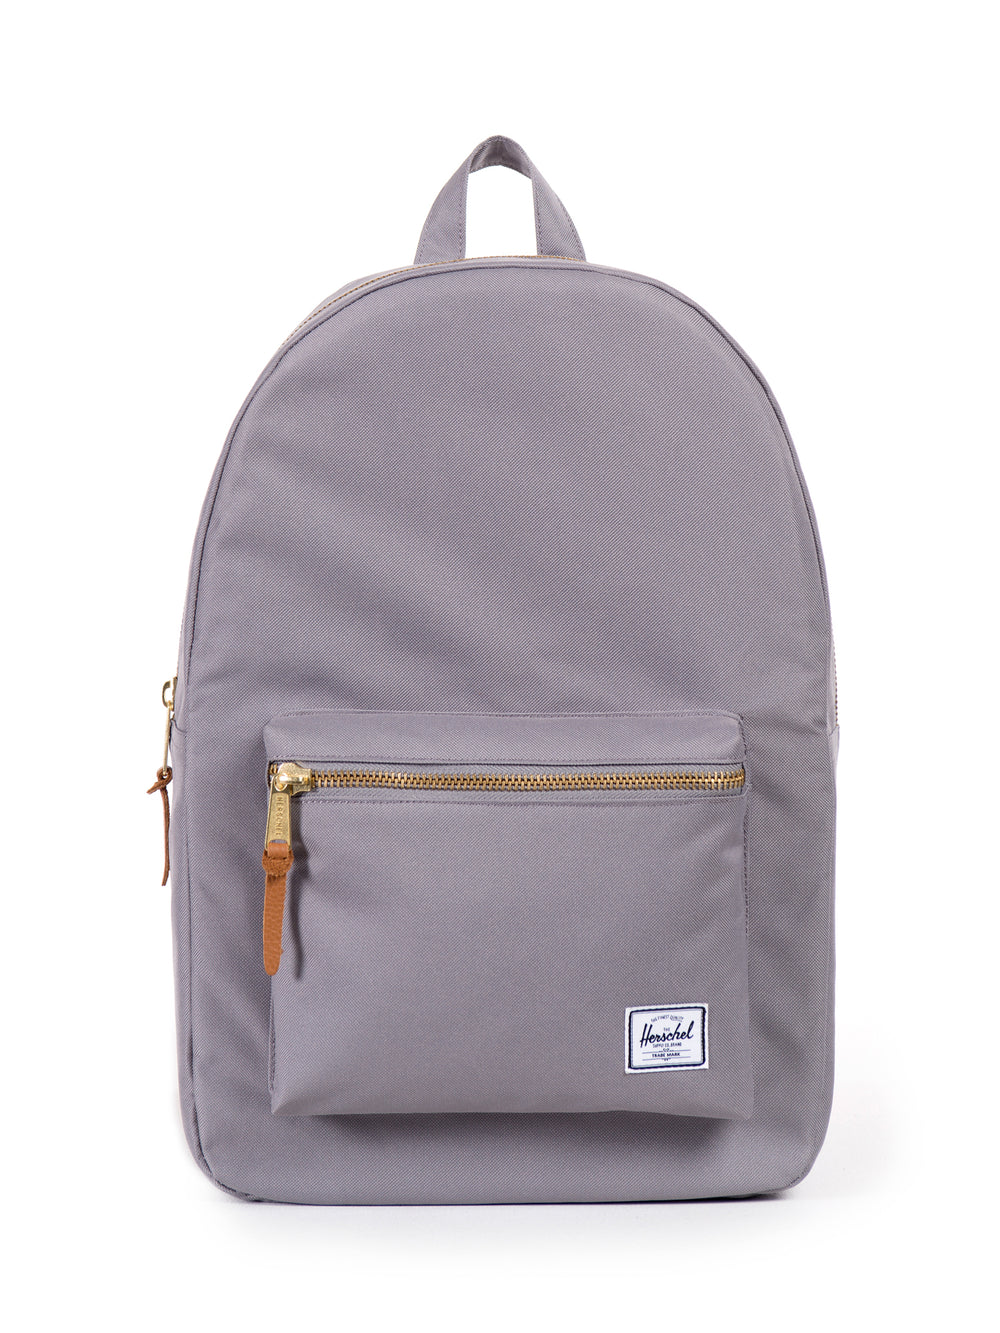 SETTLEMENT BACKPACK - GREY